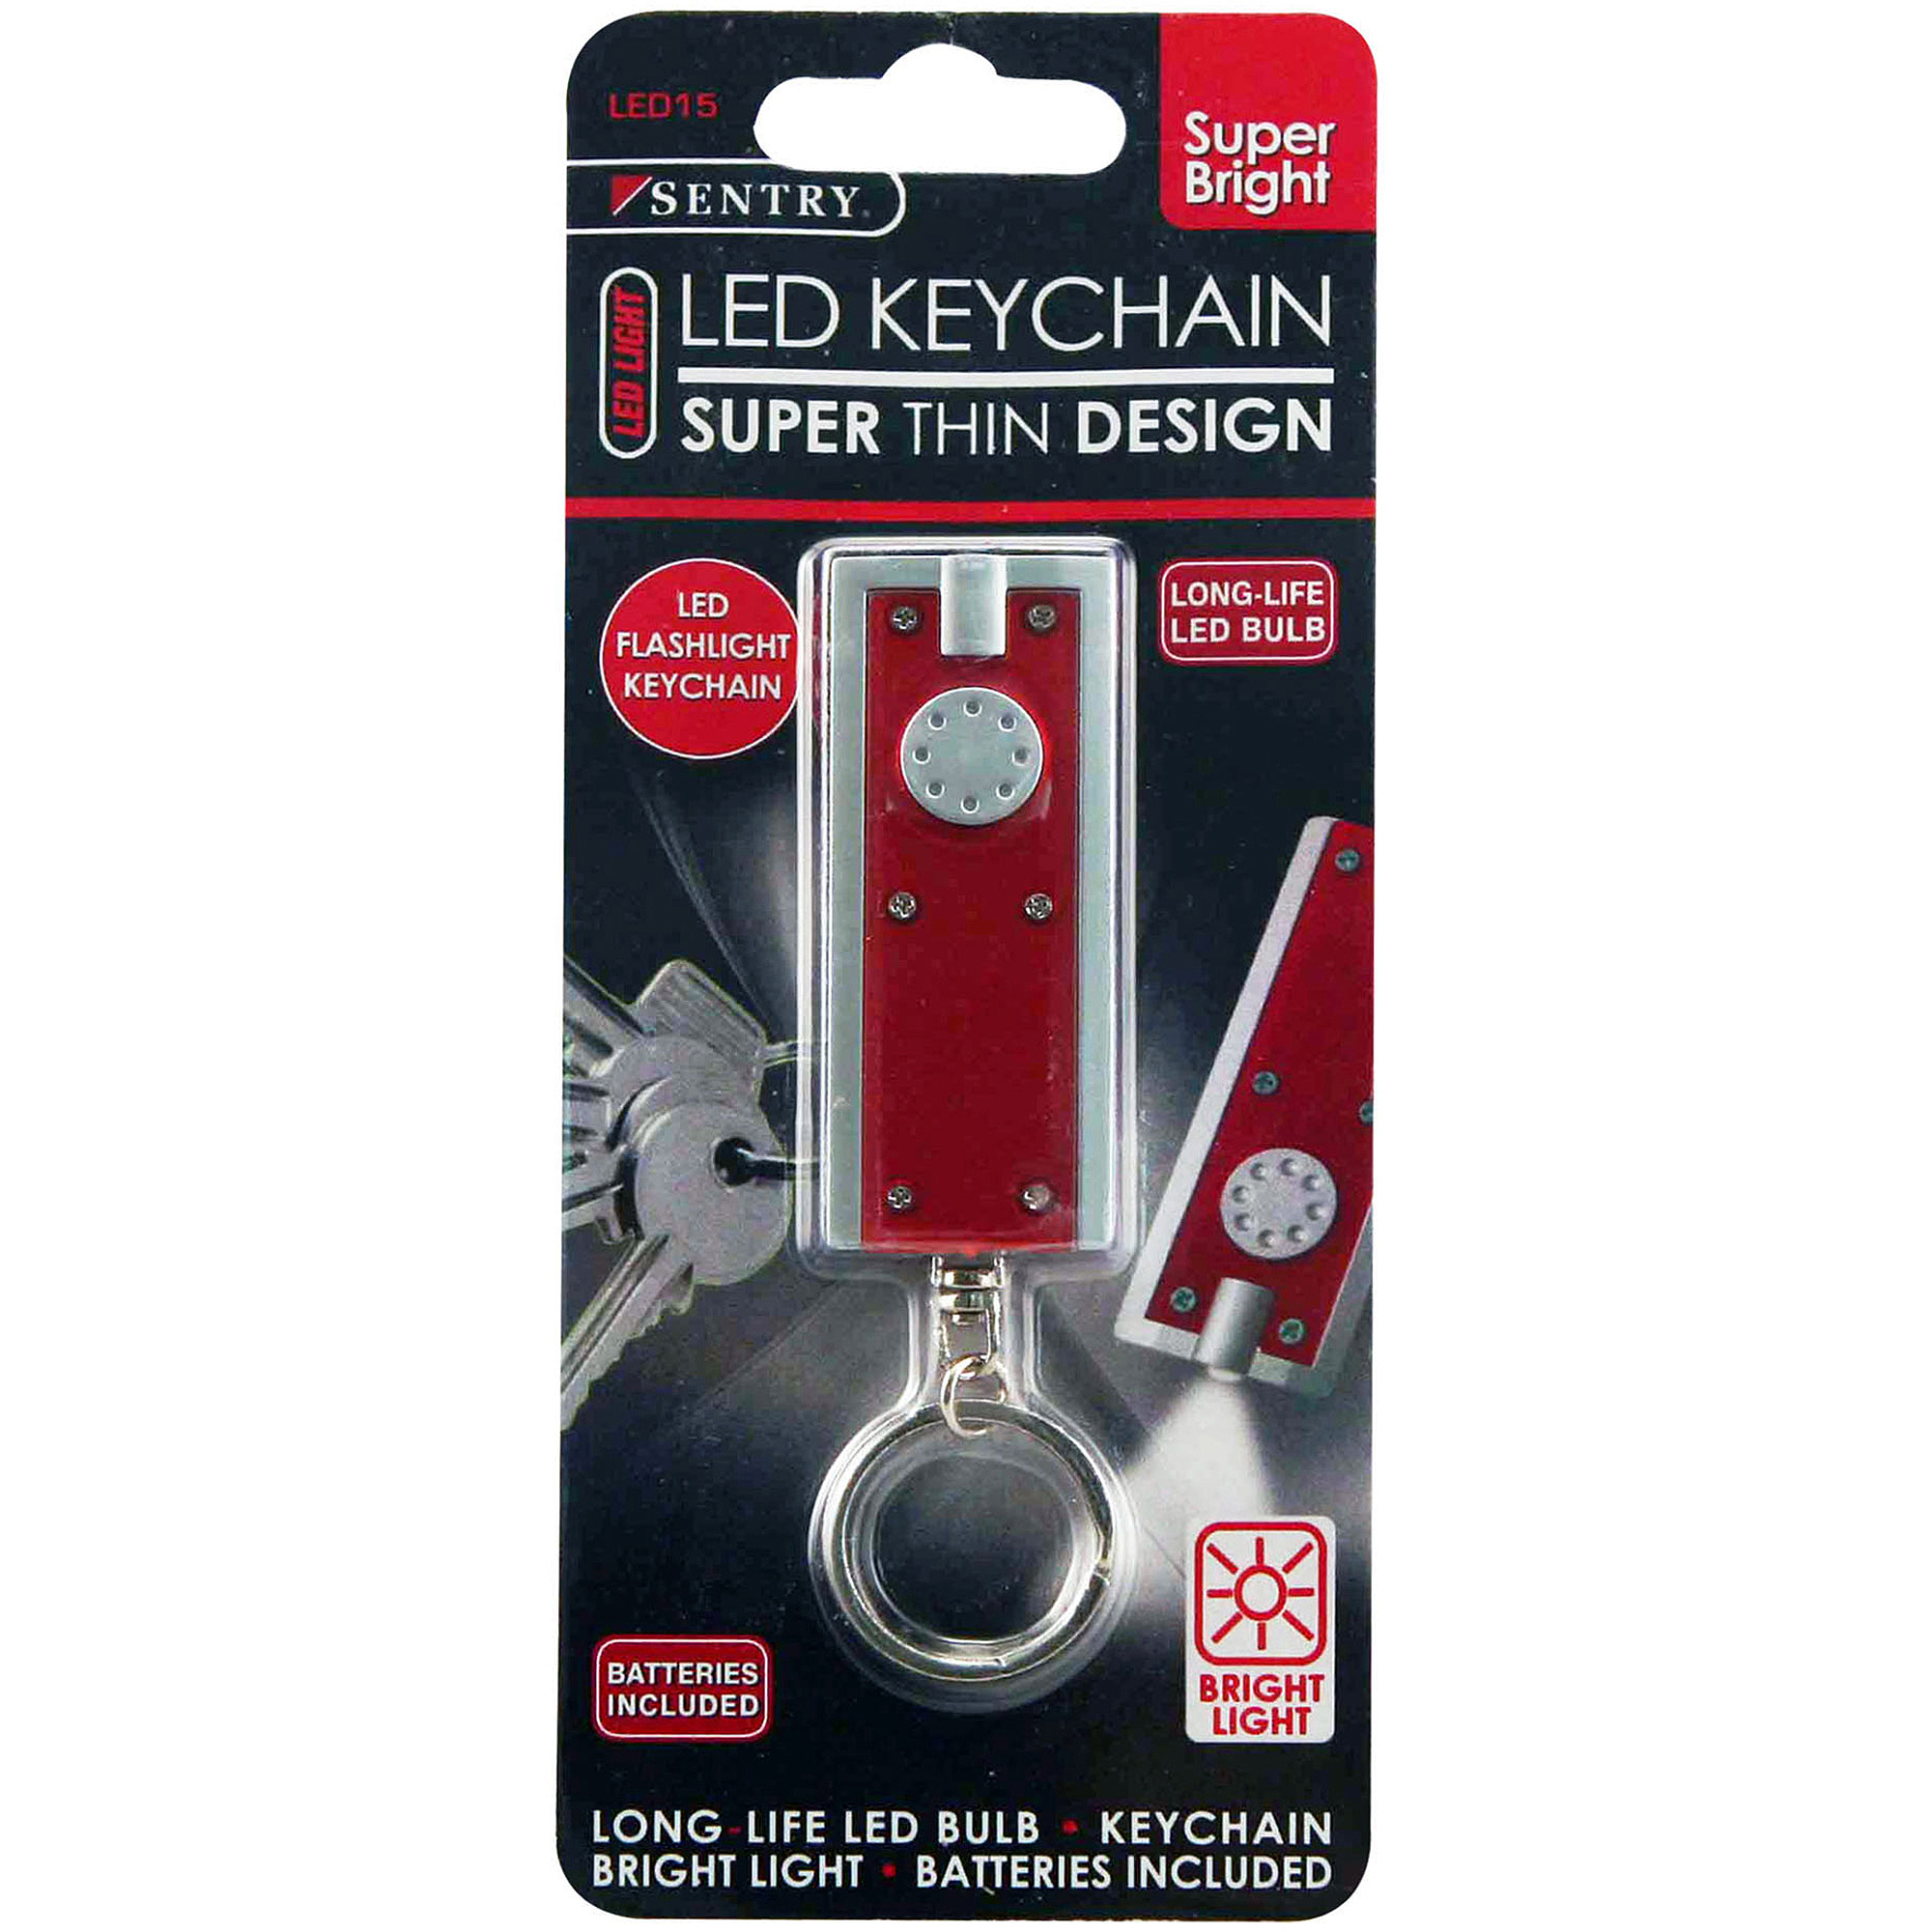 Sentry LTN-LED2P LED Flashlight Keychain, Silver/Red